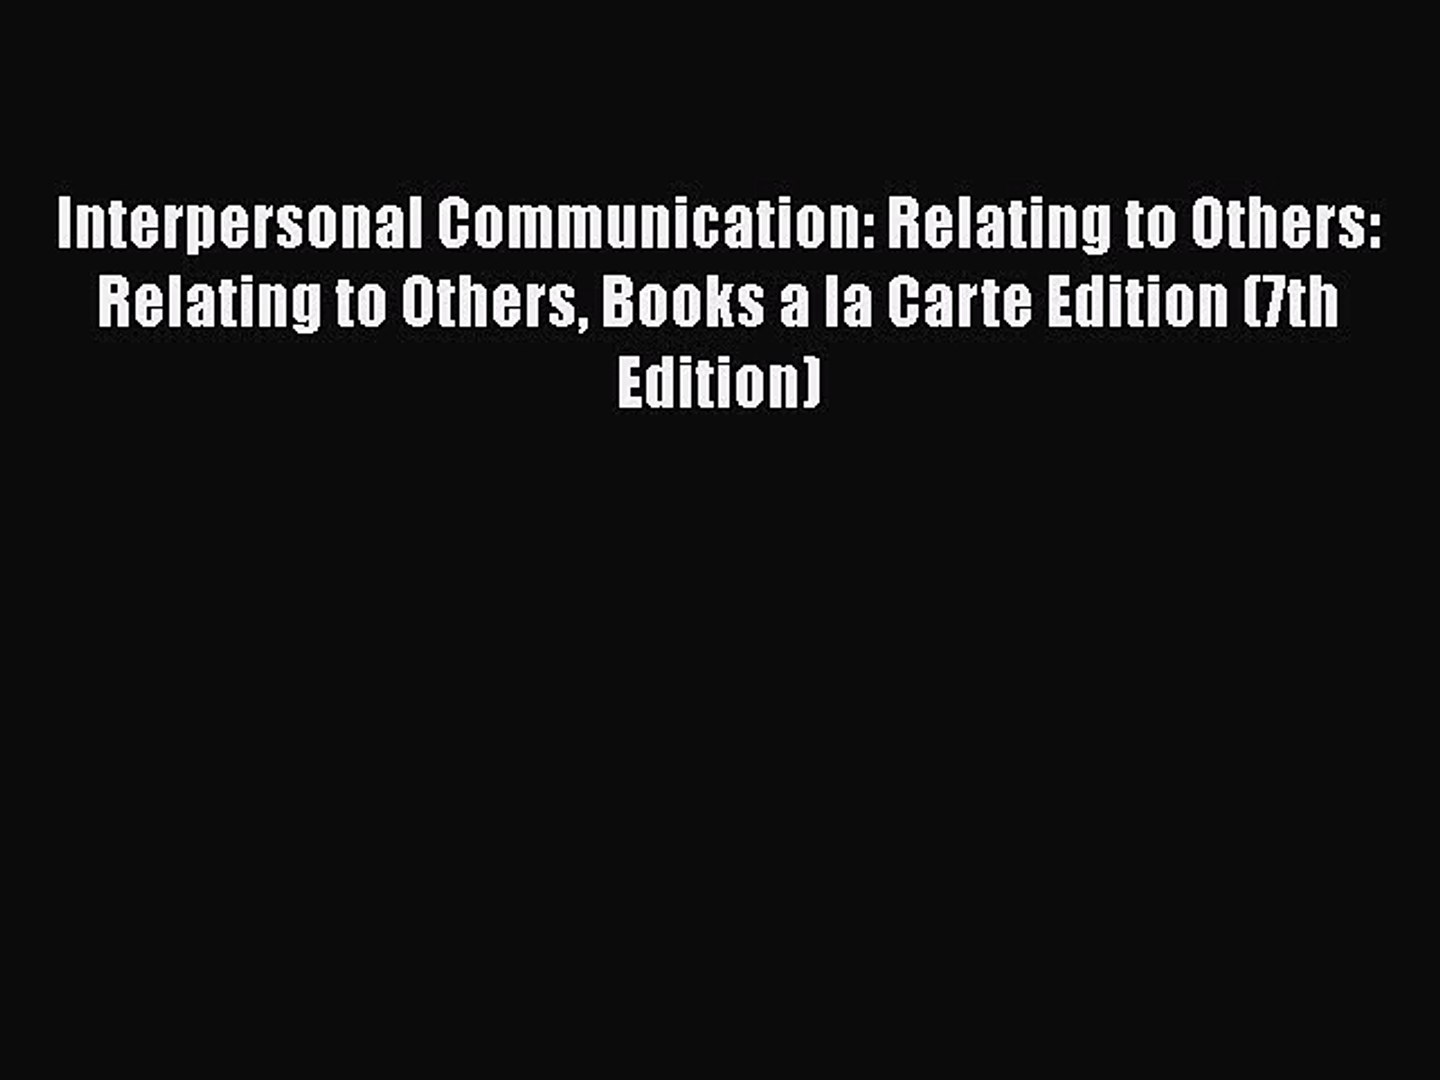 Read Interpersonal Communication: Relating to Others: Relating to Others Books a la Carte Edition